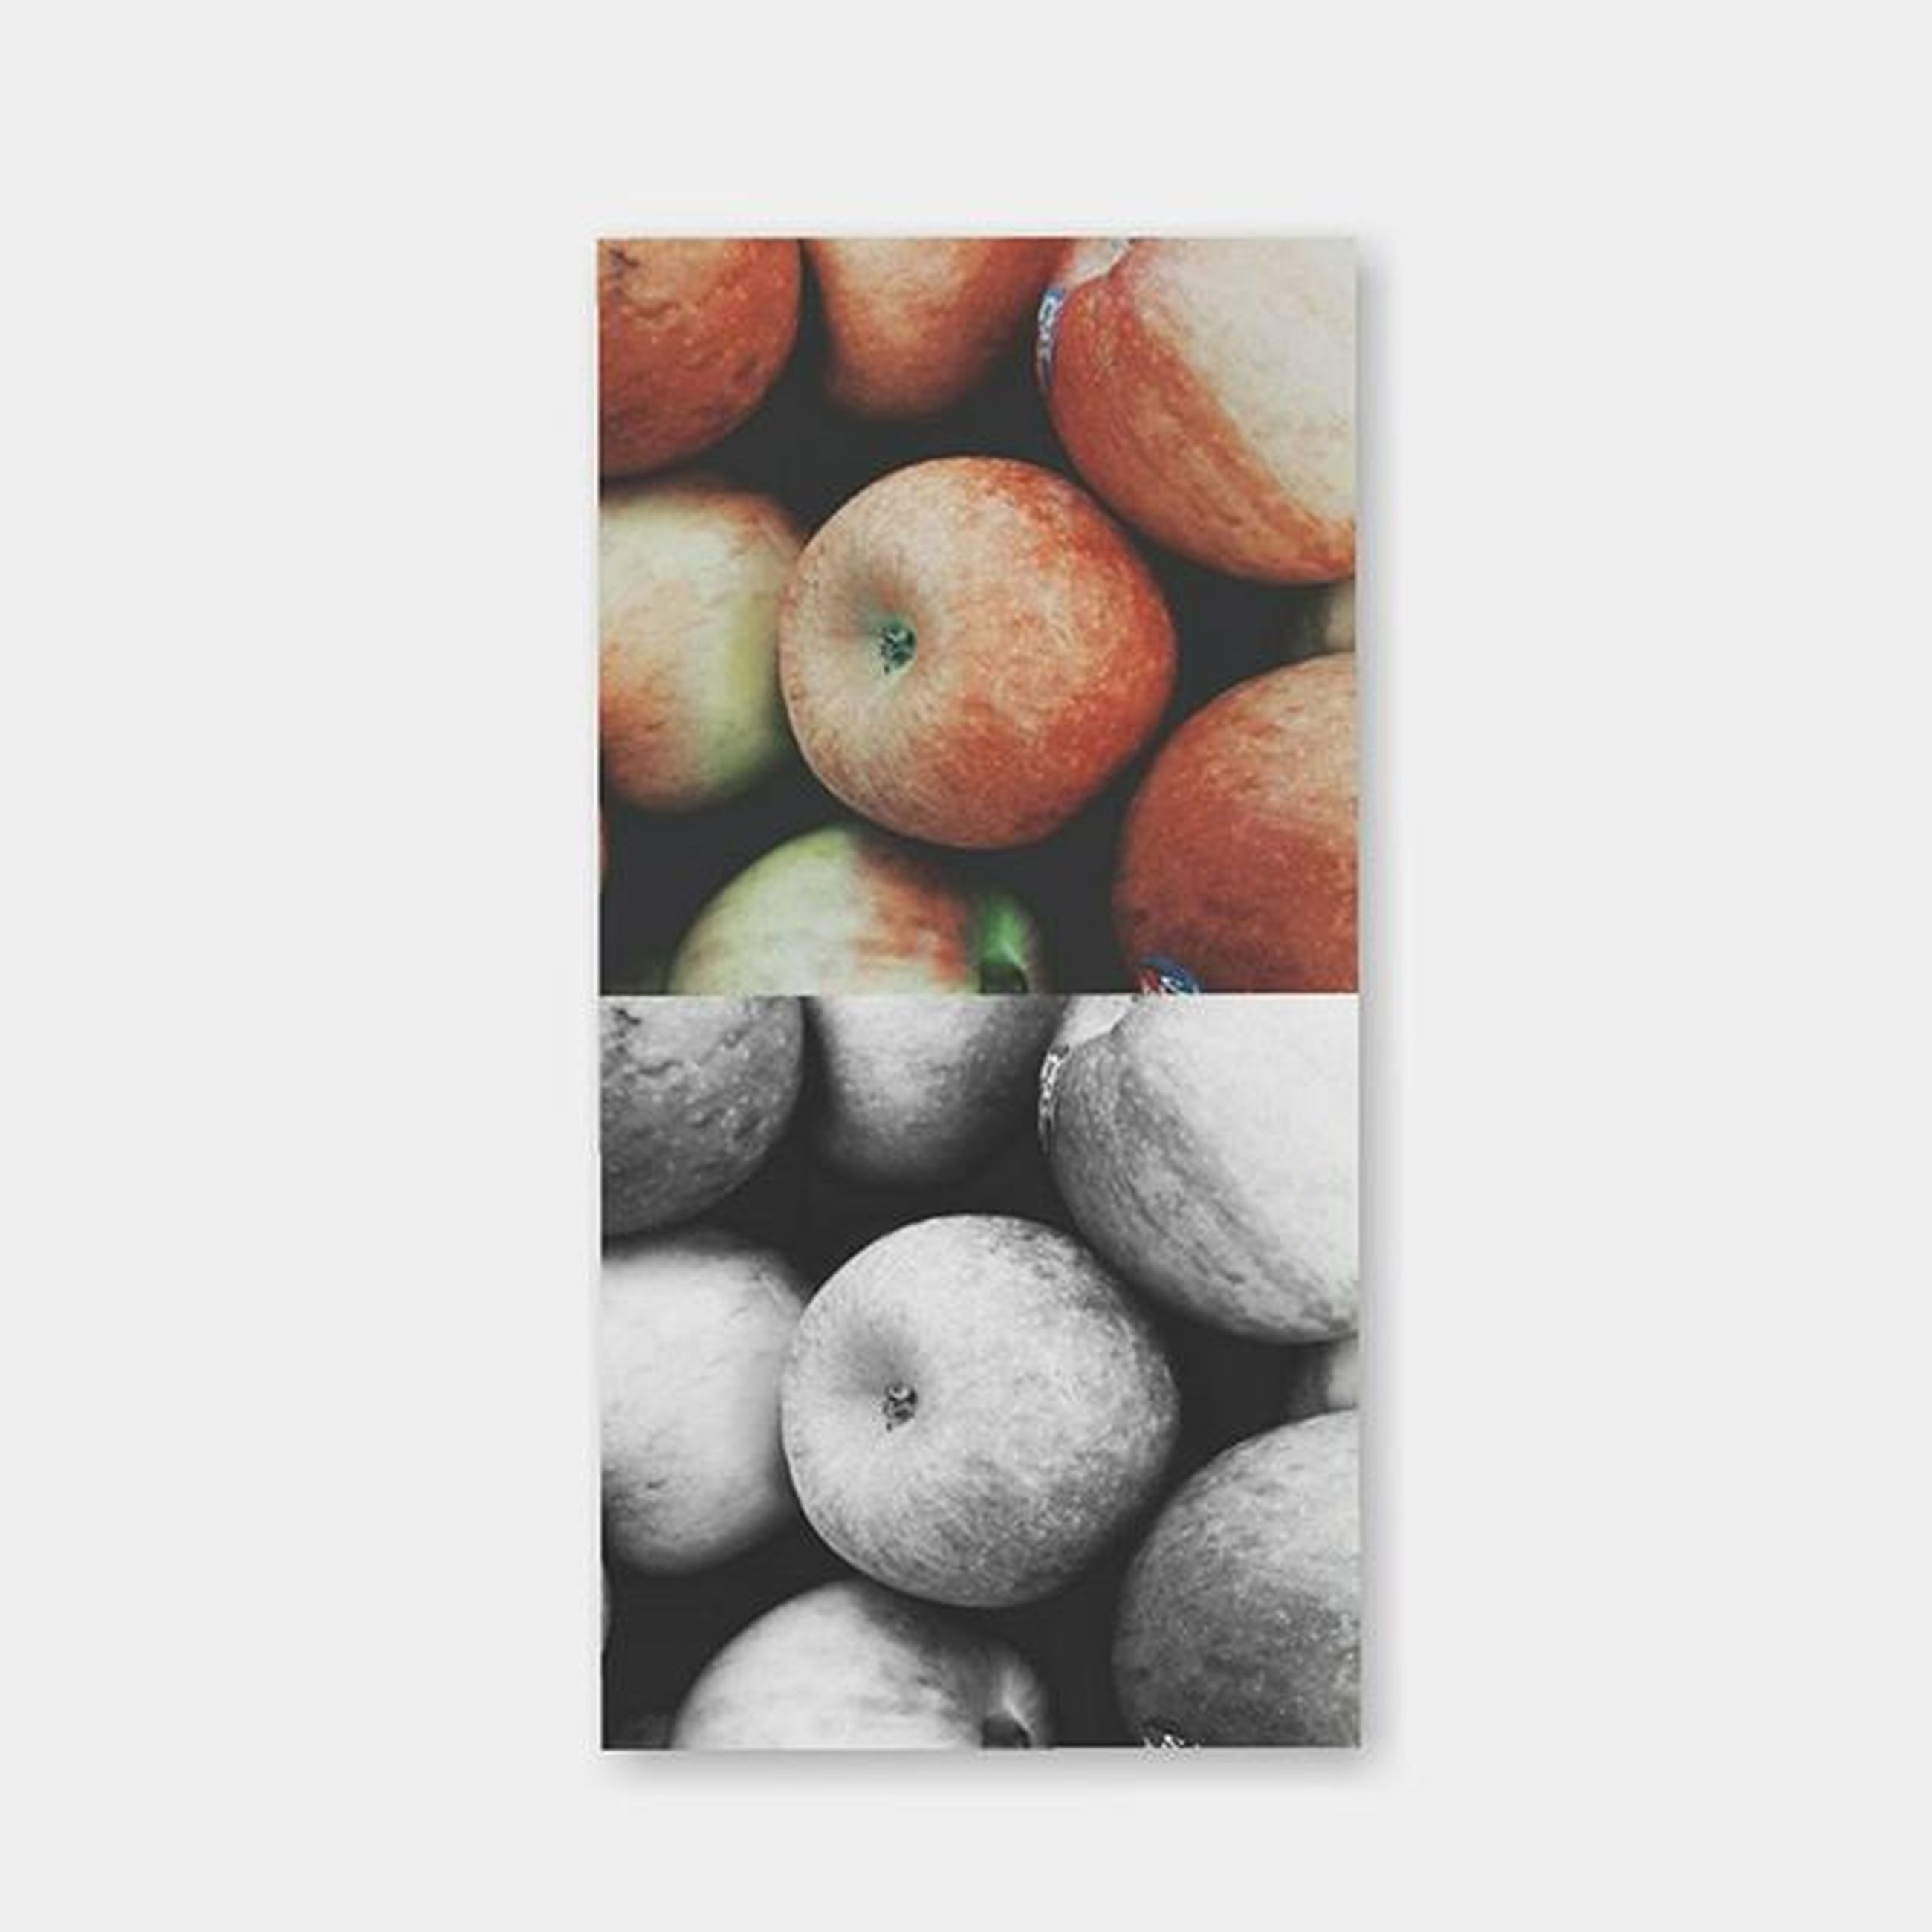 food and drink, healthy eating, food, transfer print, large group of objects, fruit, still life, abundance, freshness, auto post production filter, stack, close-up, group of objects, indoors, no people, organic, heap, high angle view, variation, ripe